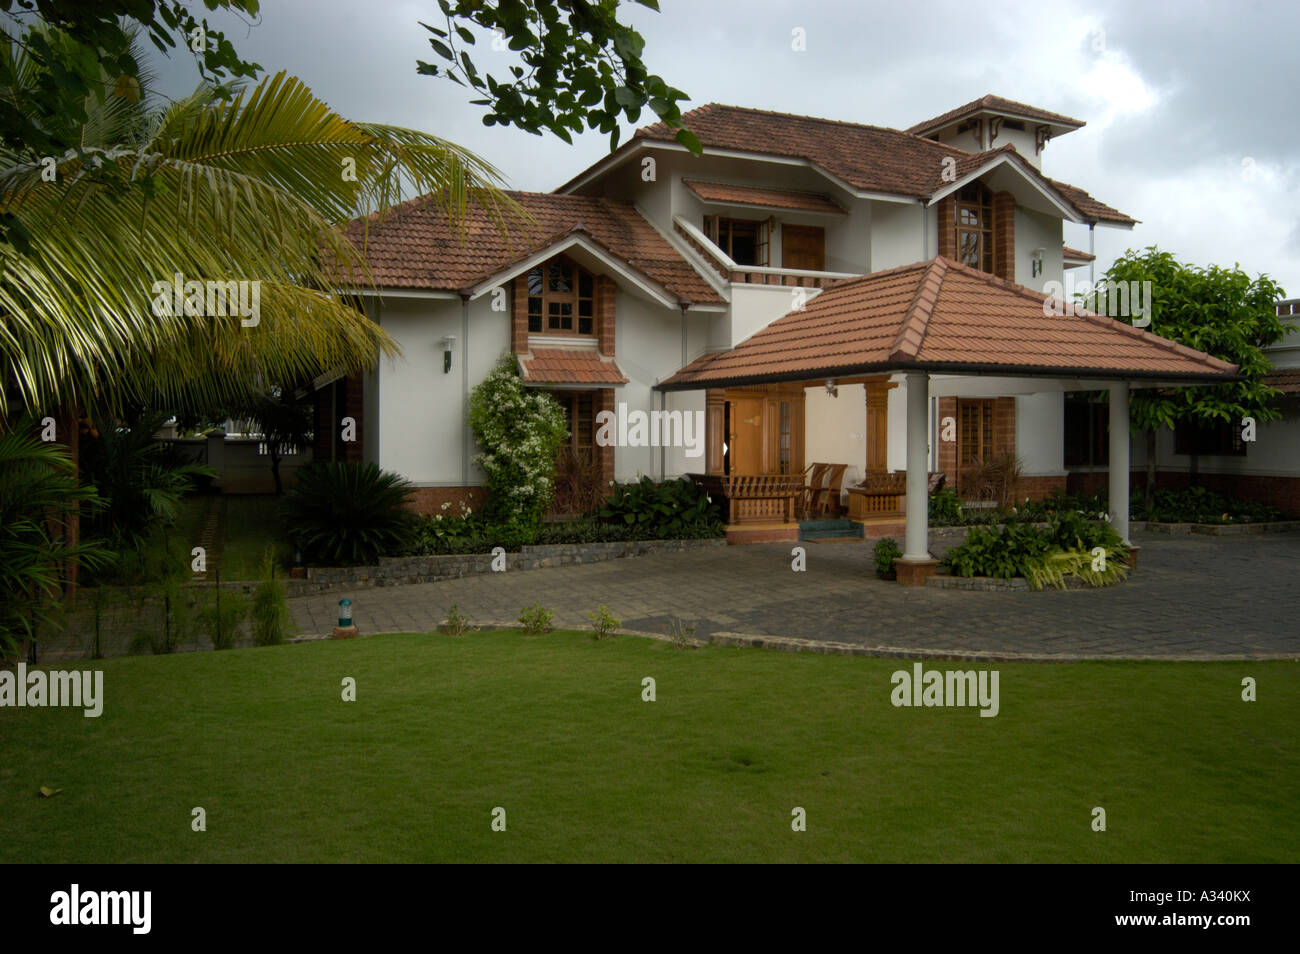 Architect designed modern kerala house with traditional for House plans with photos in kerala style